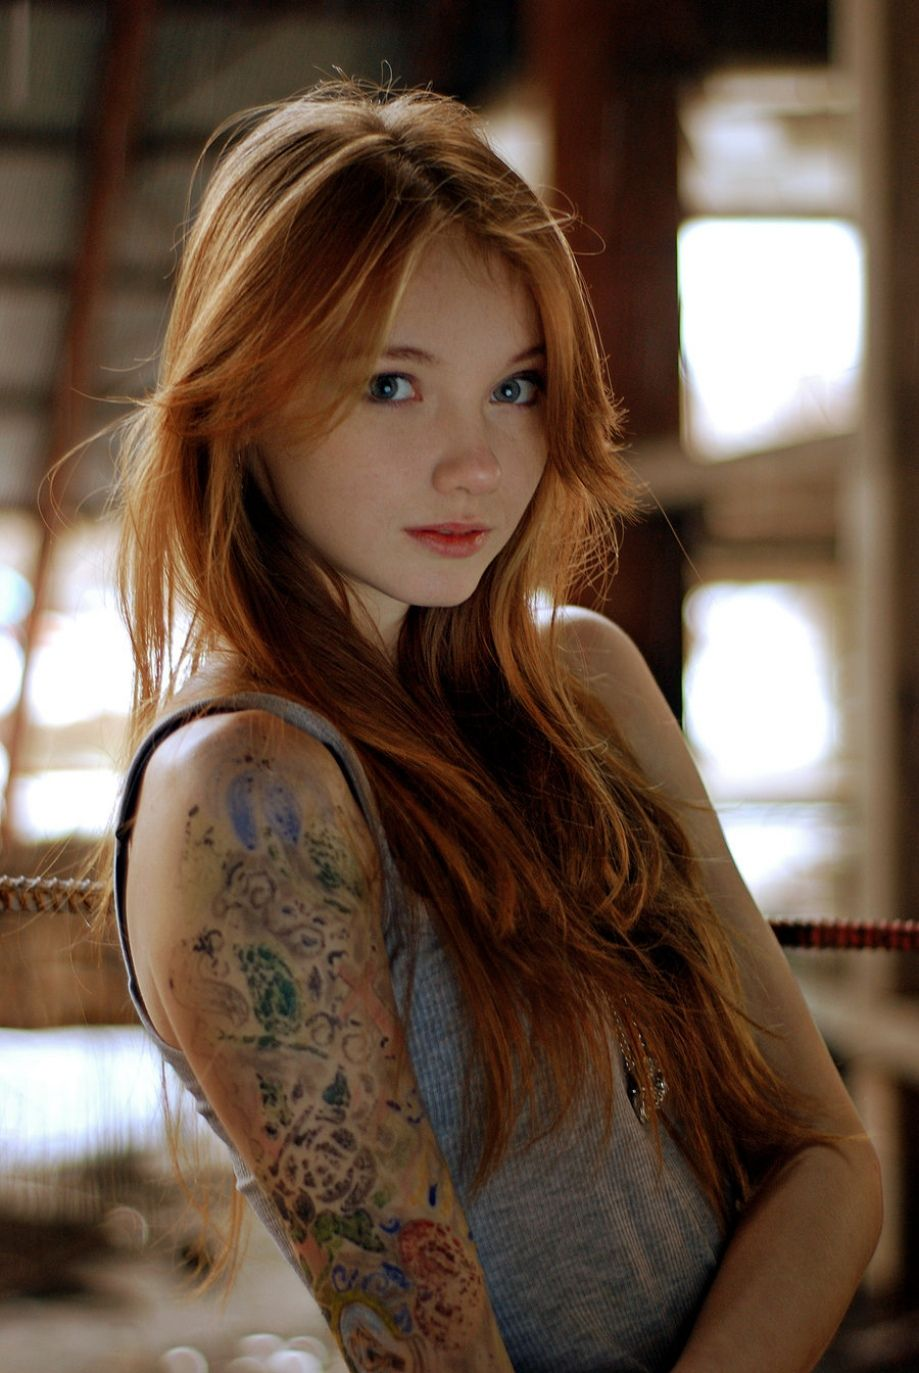 niedlicher blick redheads pinterest boobs naked and nude